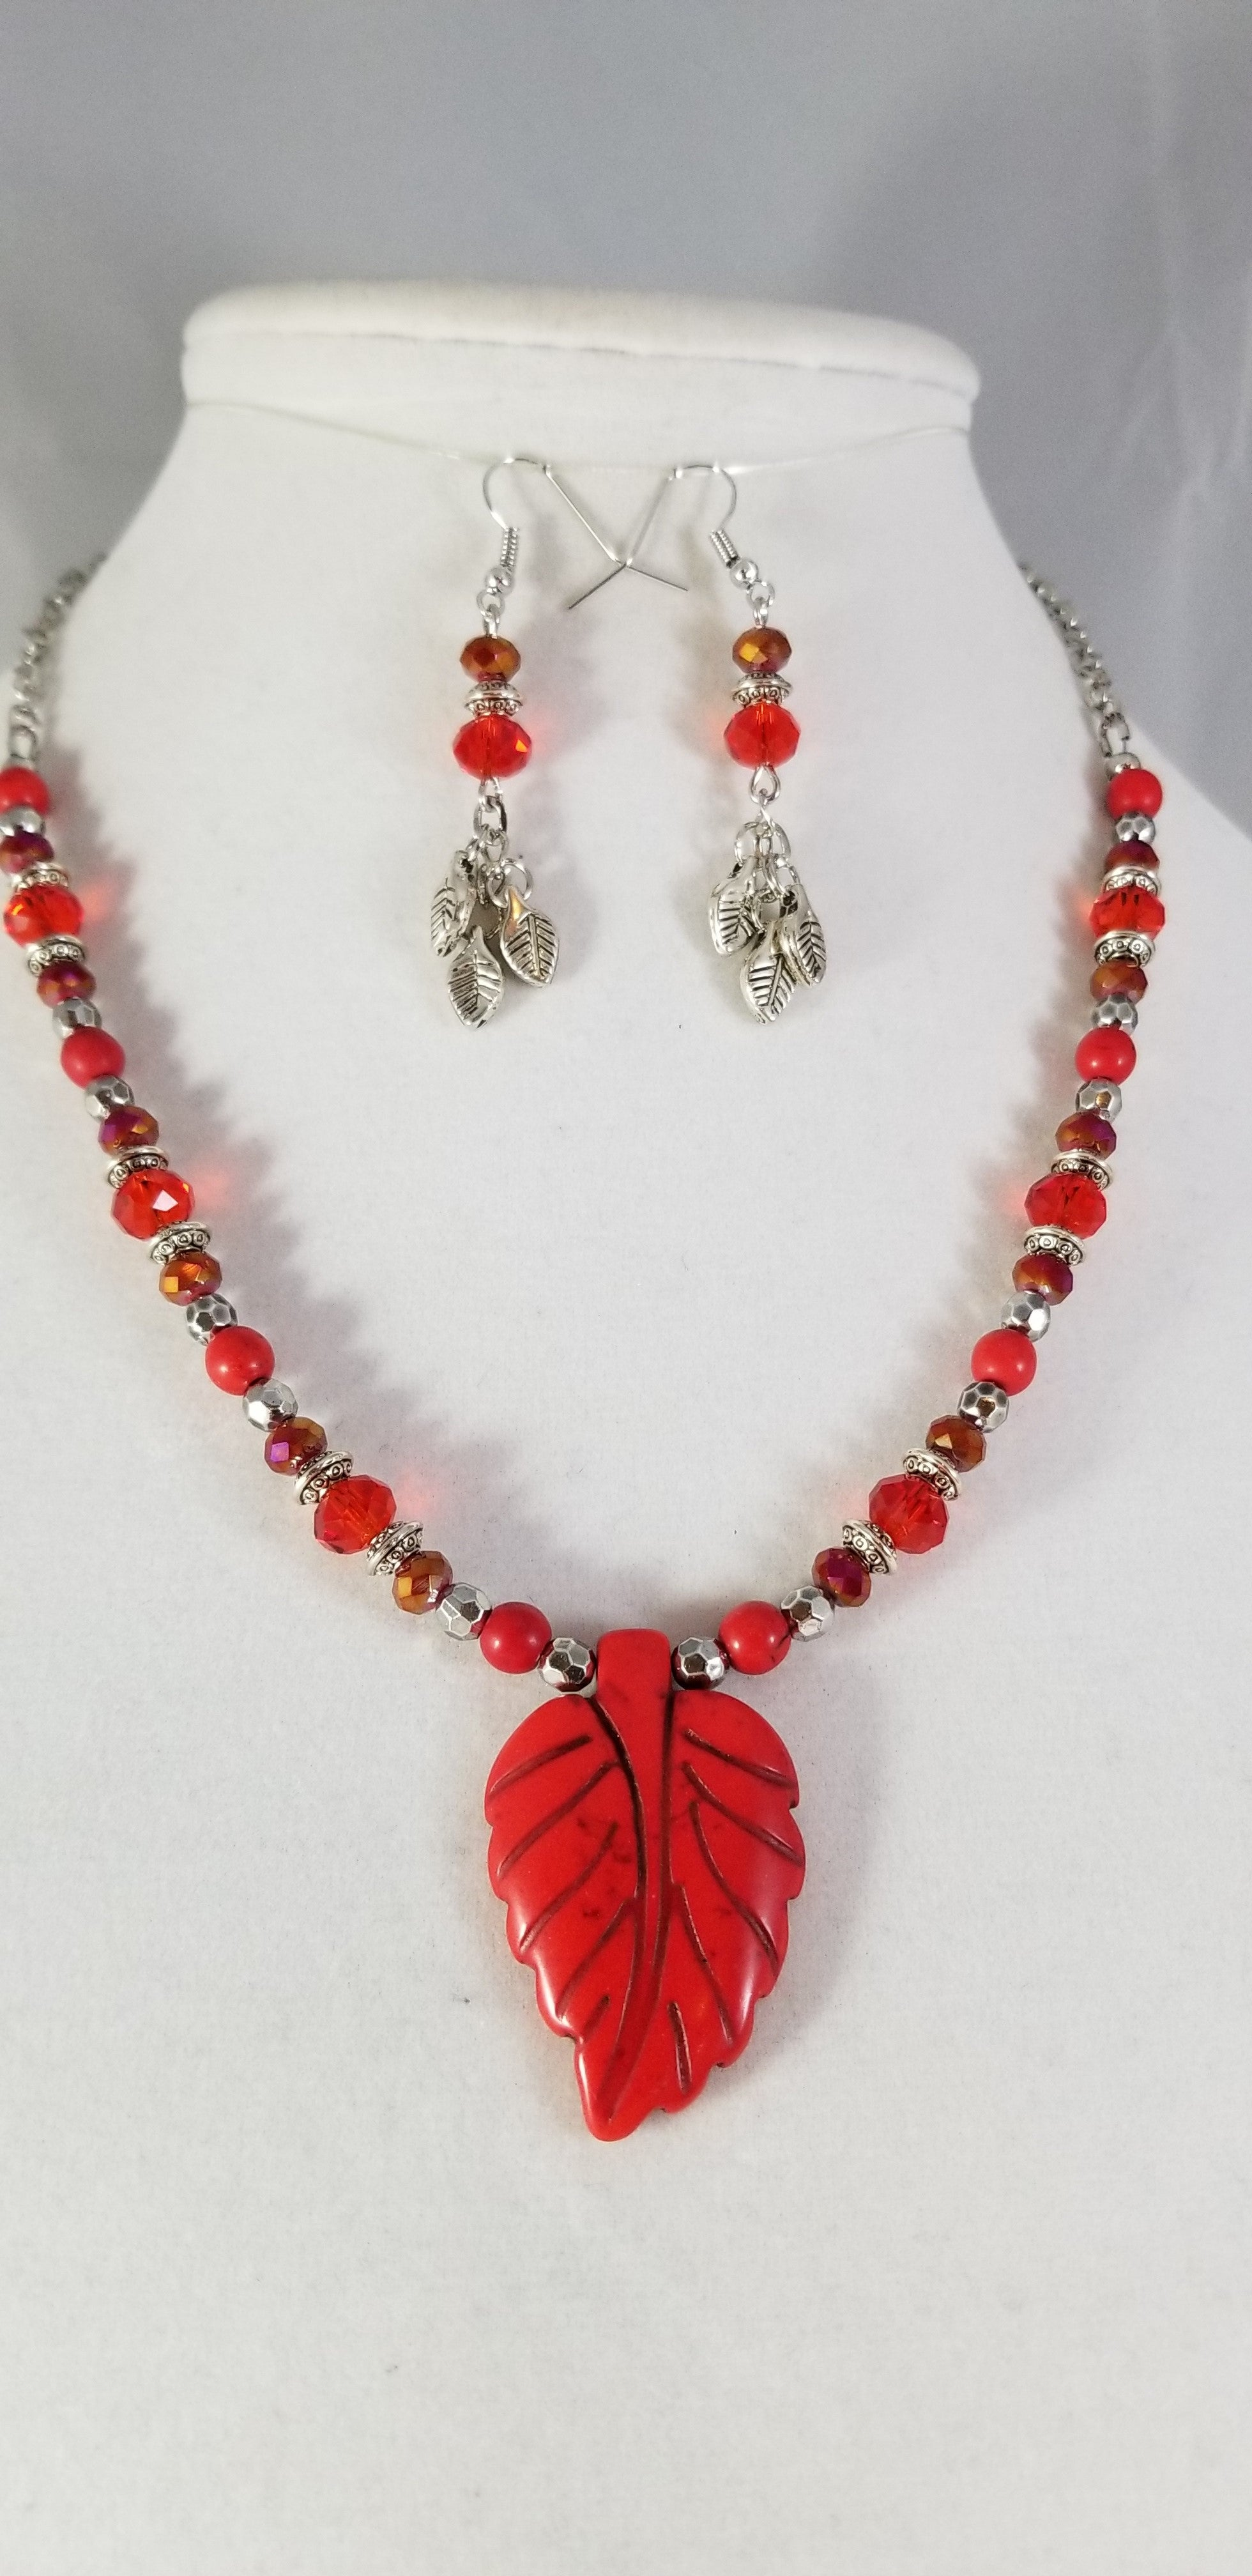 Red Leaf Necklace with Earrings